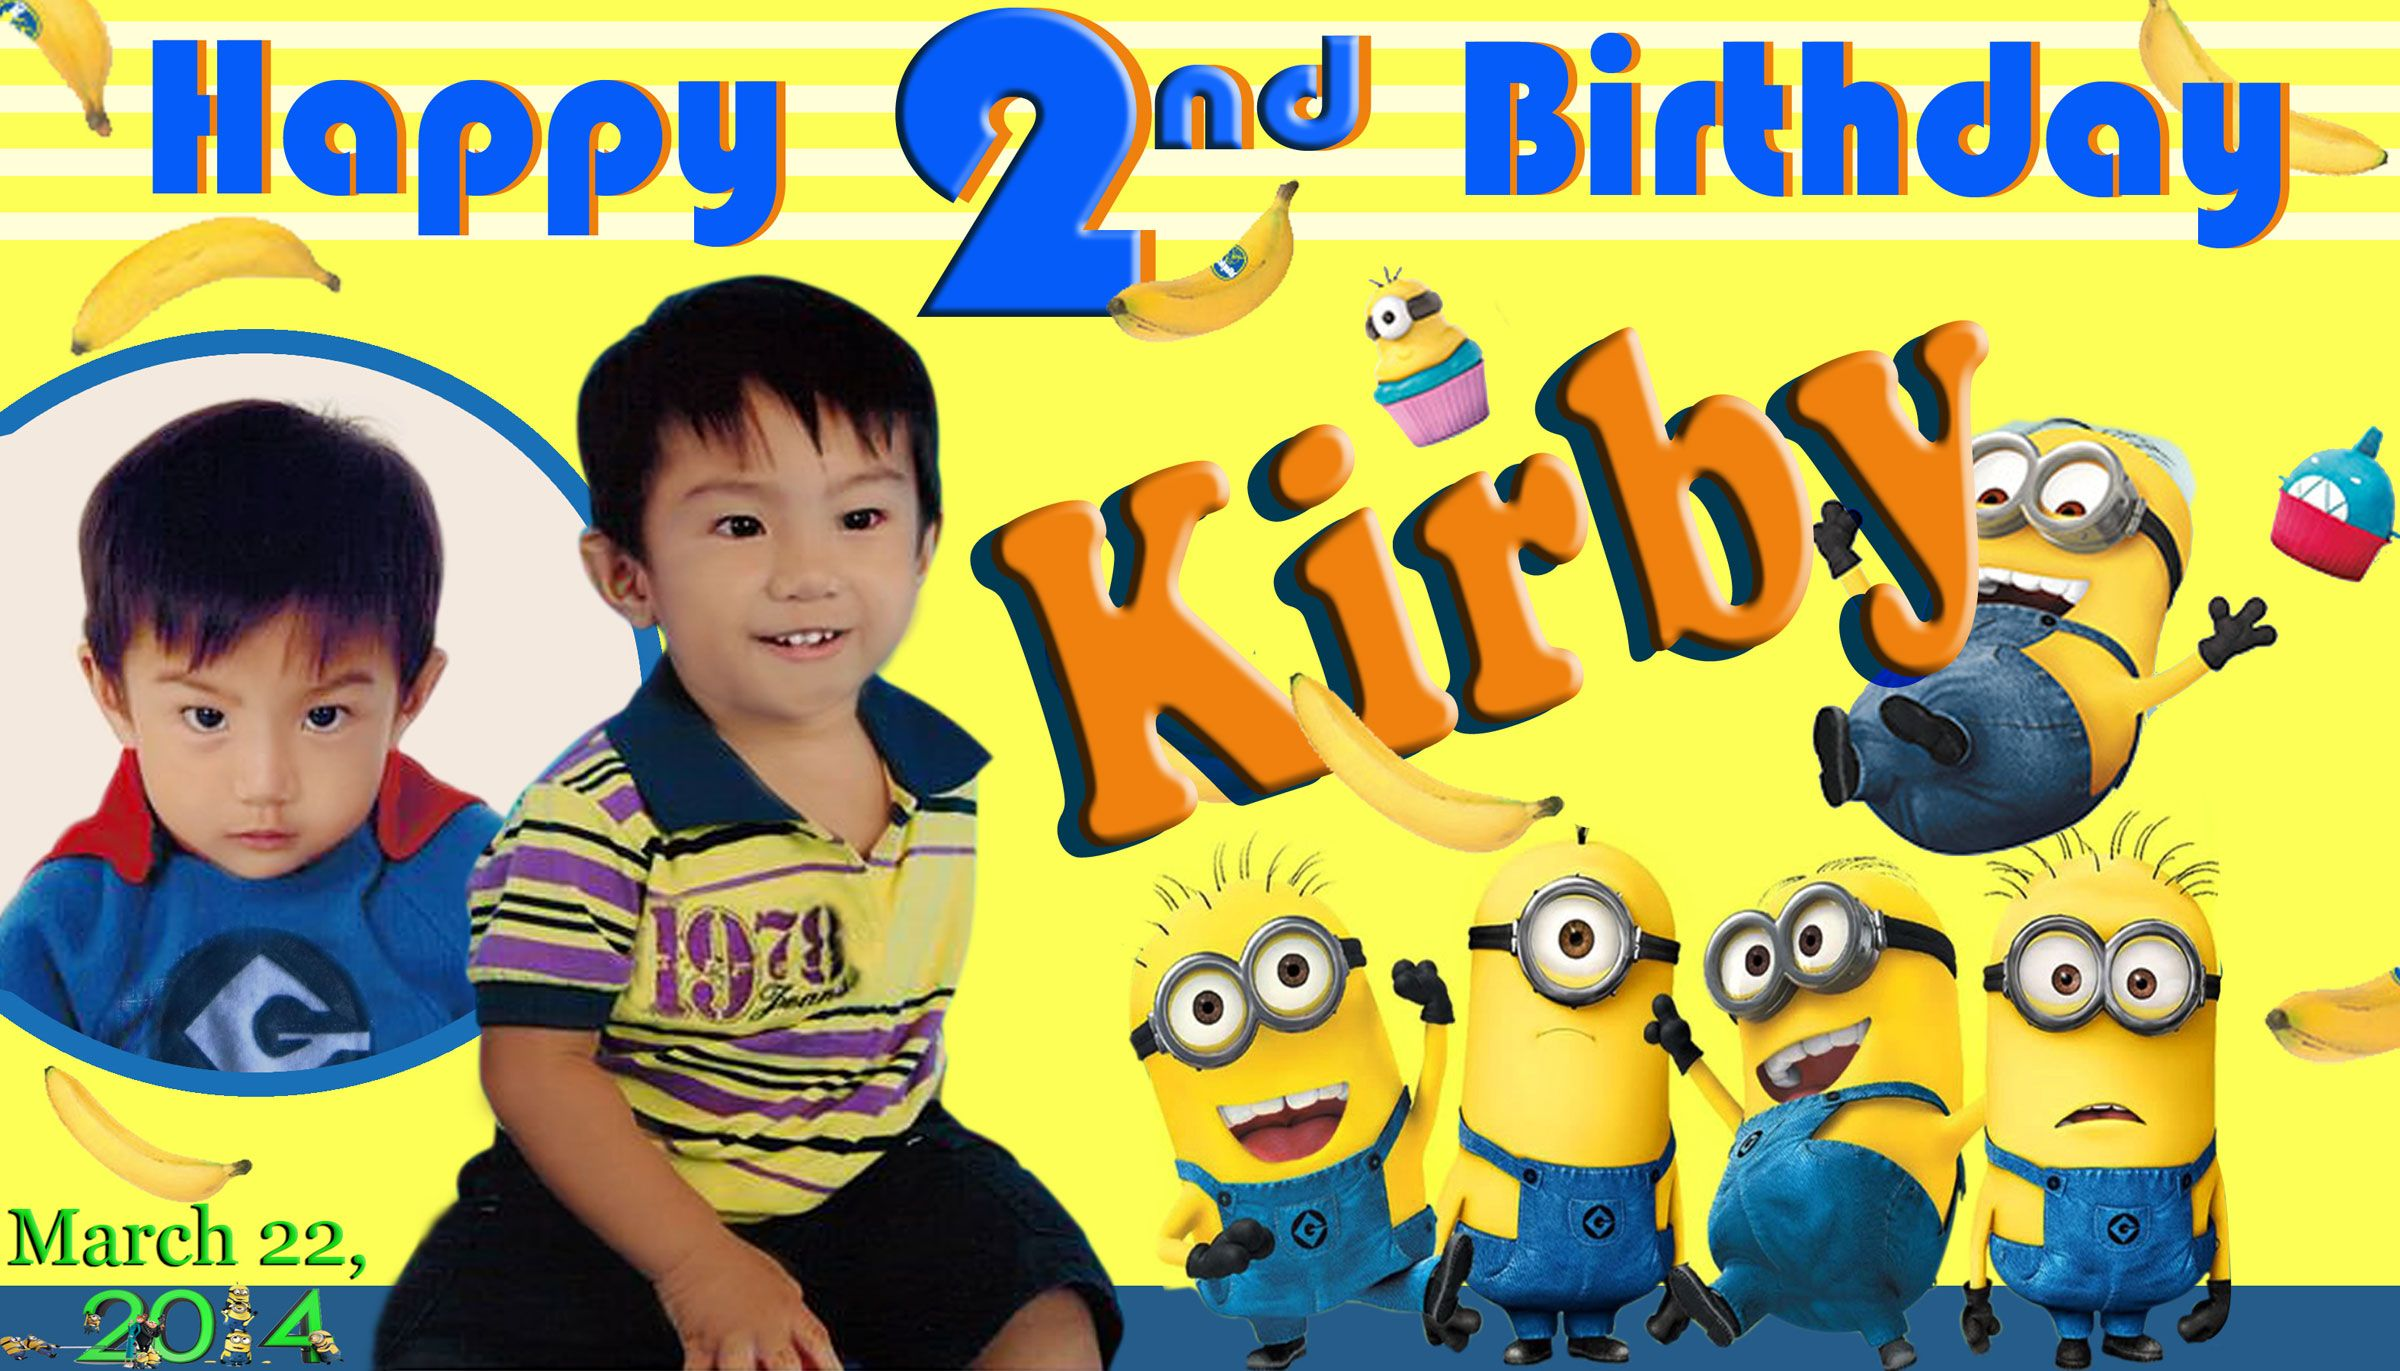 Tarpaulin Layout Size 2x3 5 C Kirby Bday For Inquiries Please